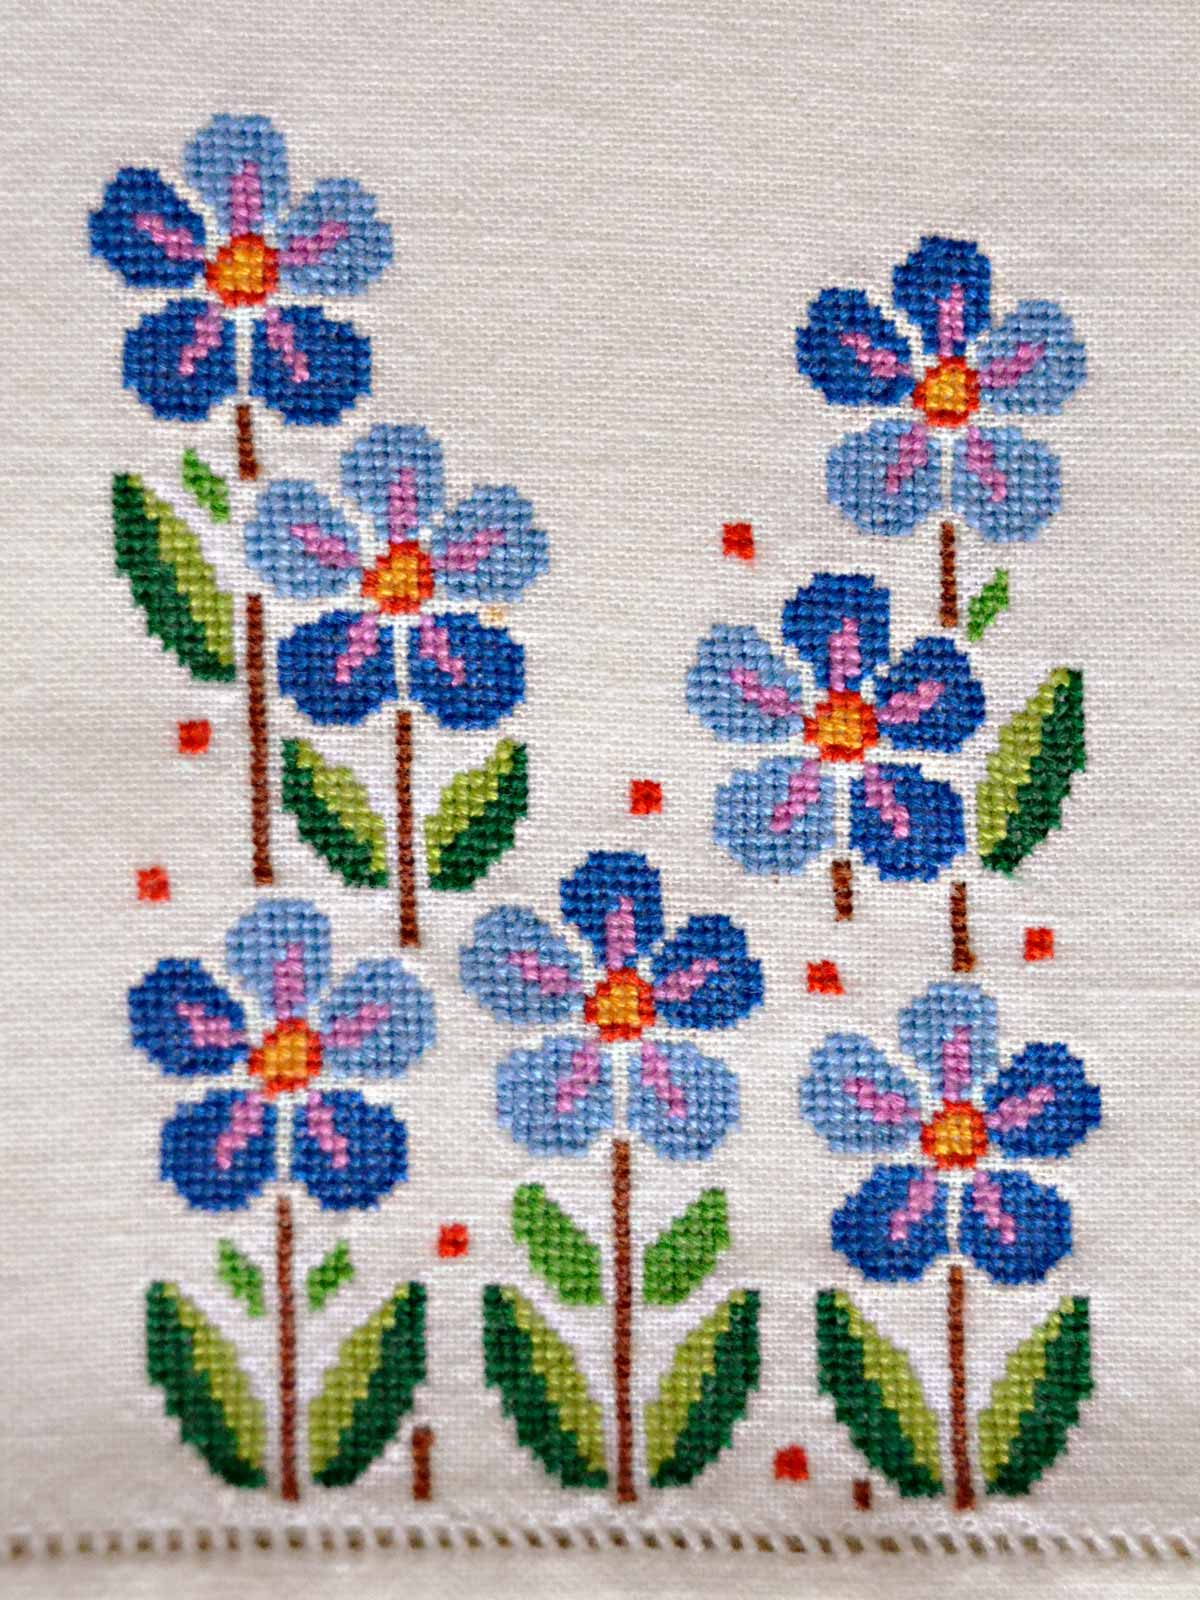 Vintage cross stitch flowers floral